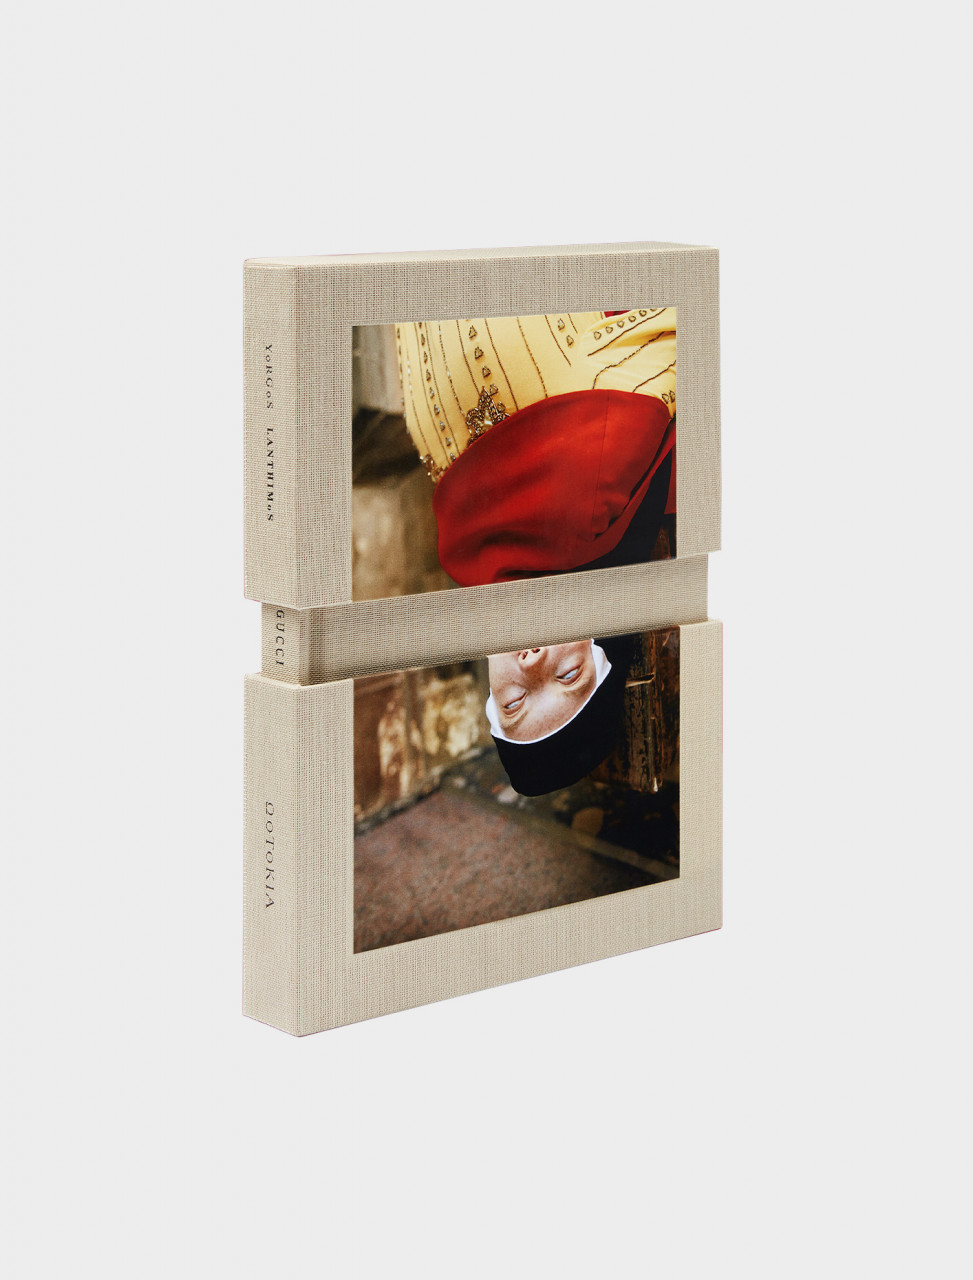 IDEA Books ltd Oviparity by Gucci and Yorgos Lanthimos